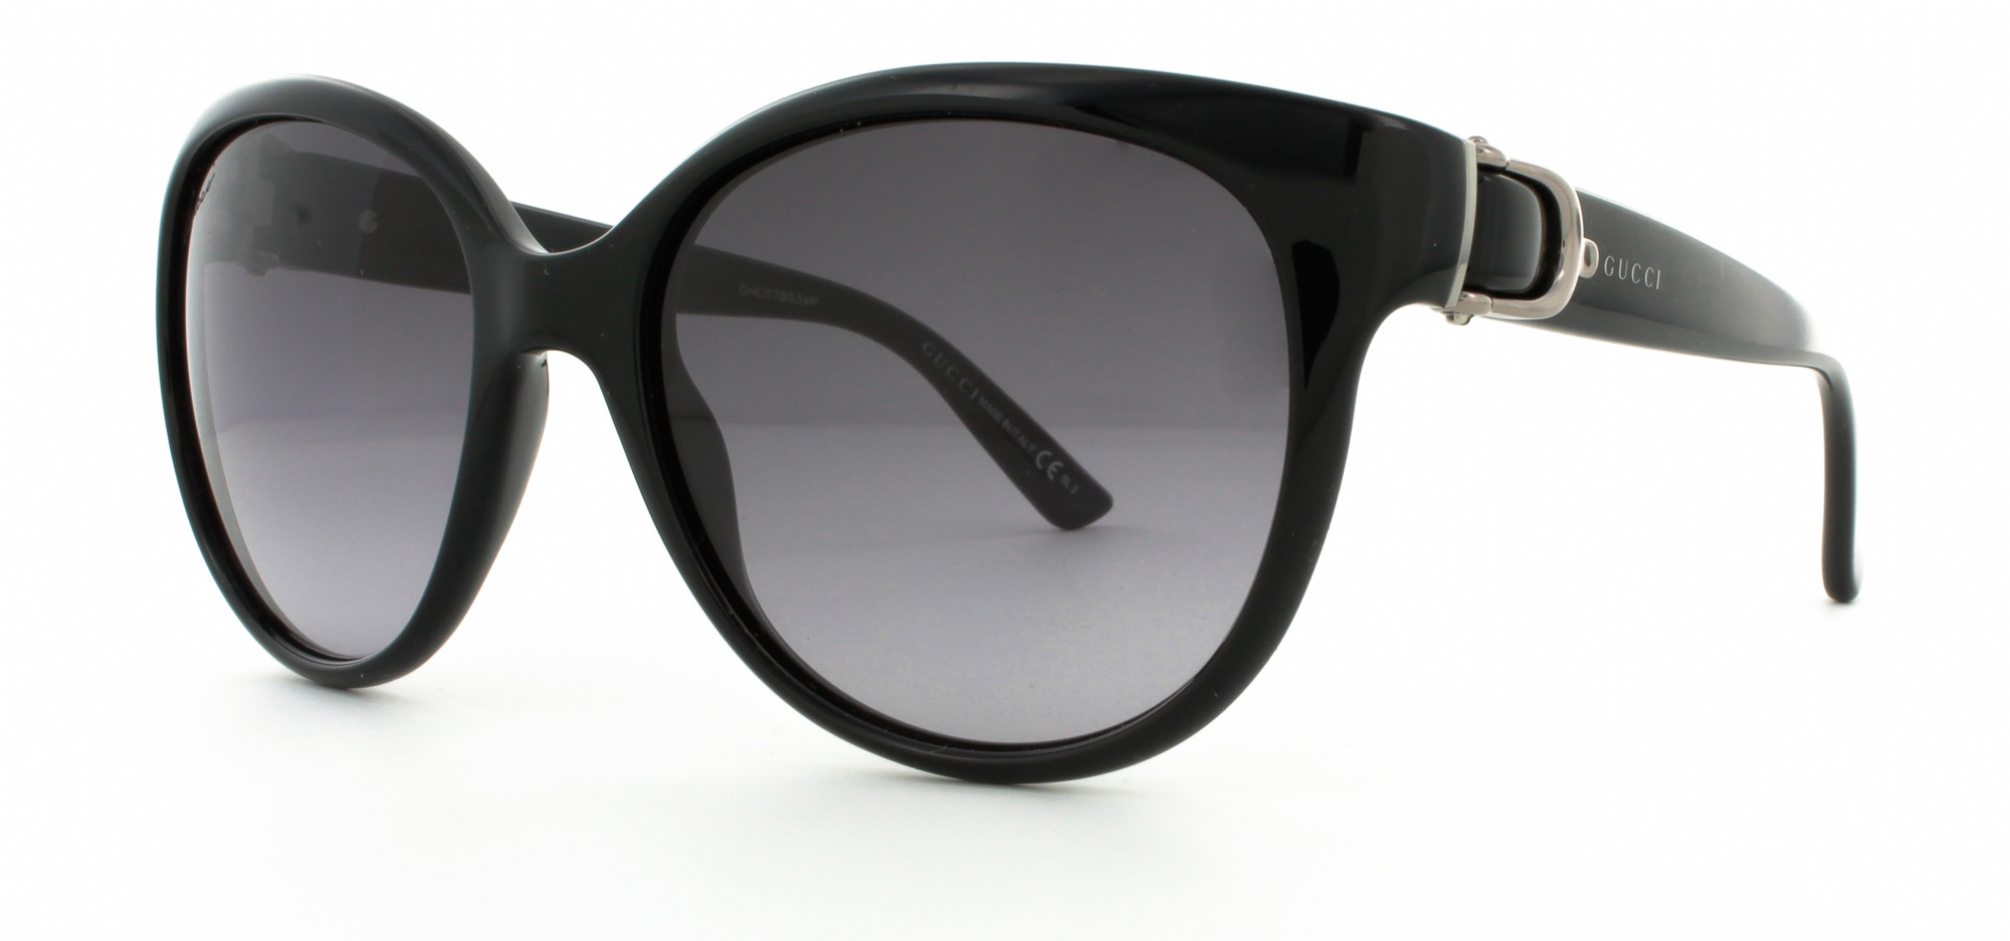 4e66abe18492 Buy Gucci Sunglasses directly from OpticsFast.com